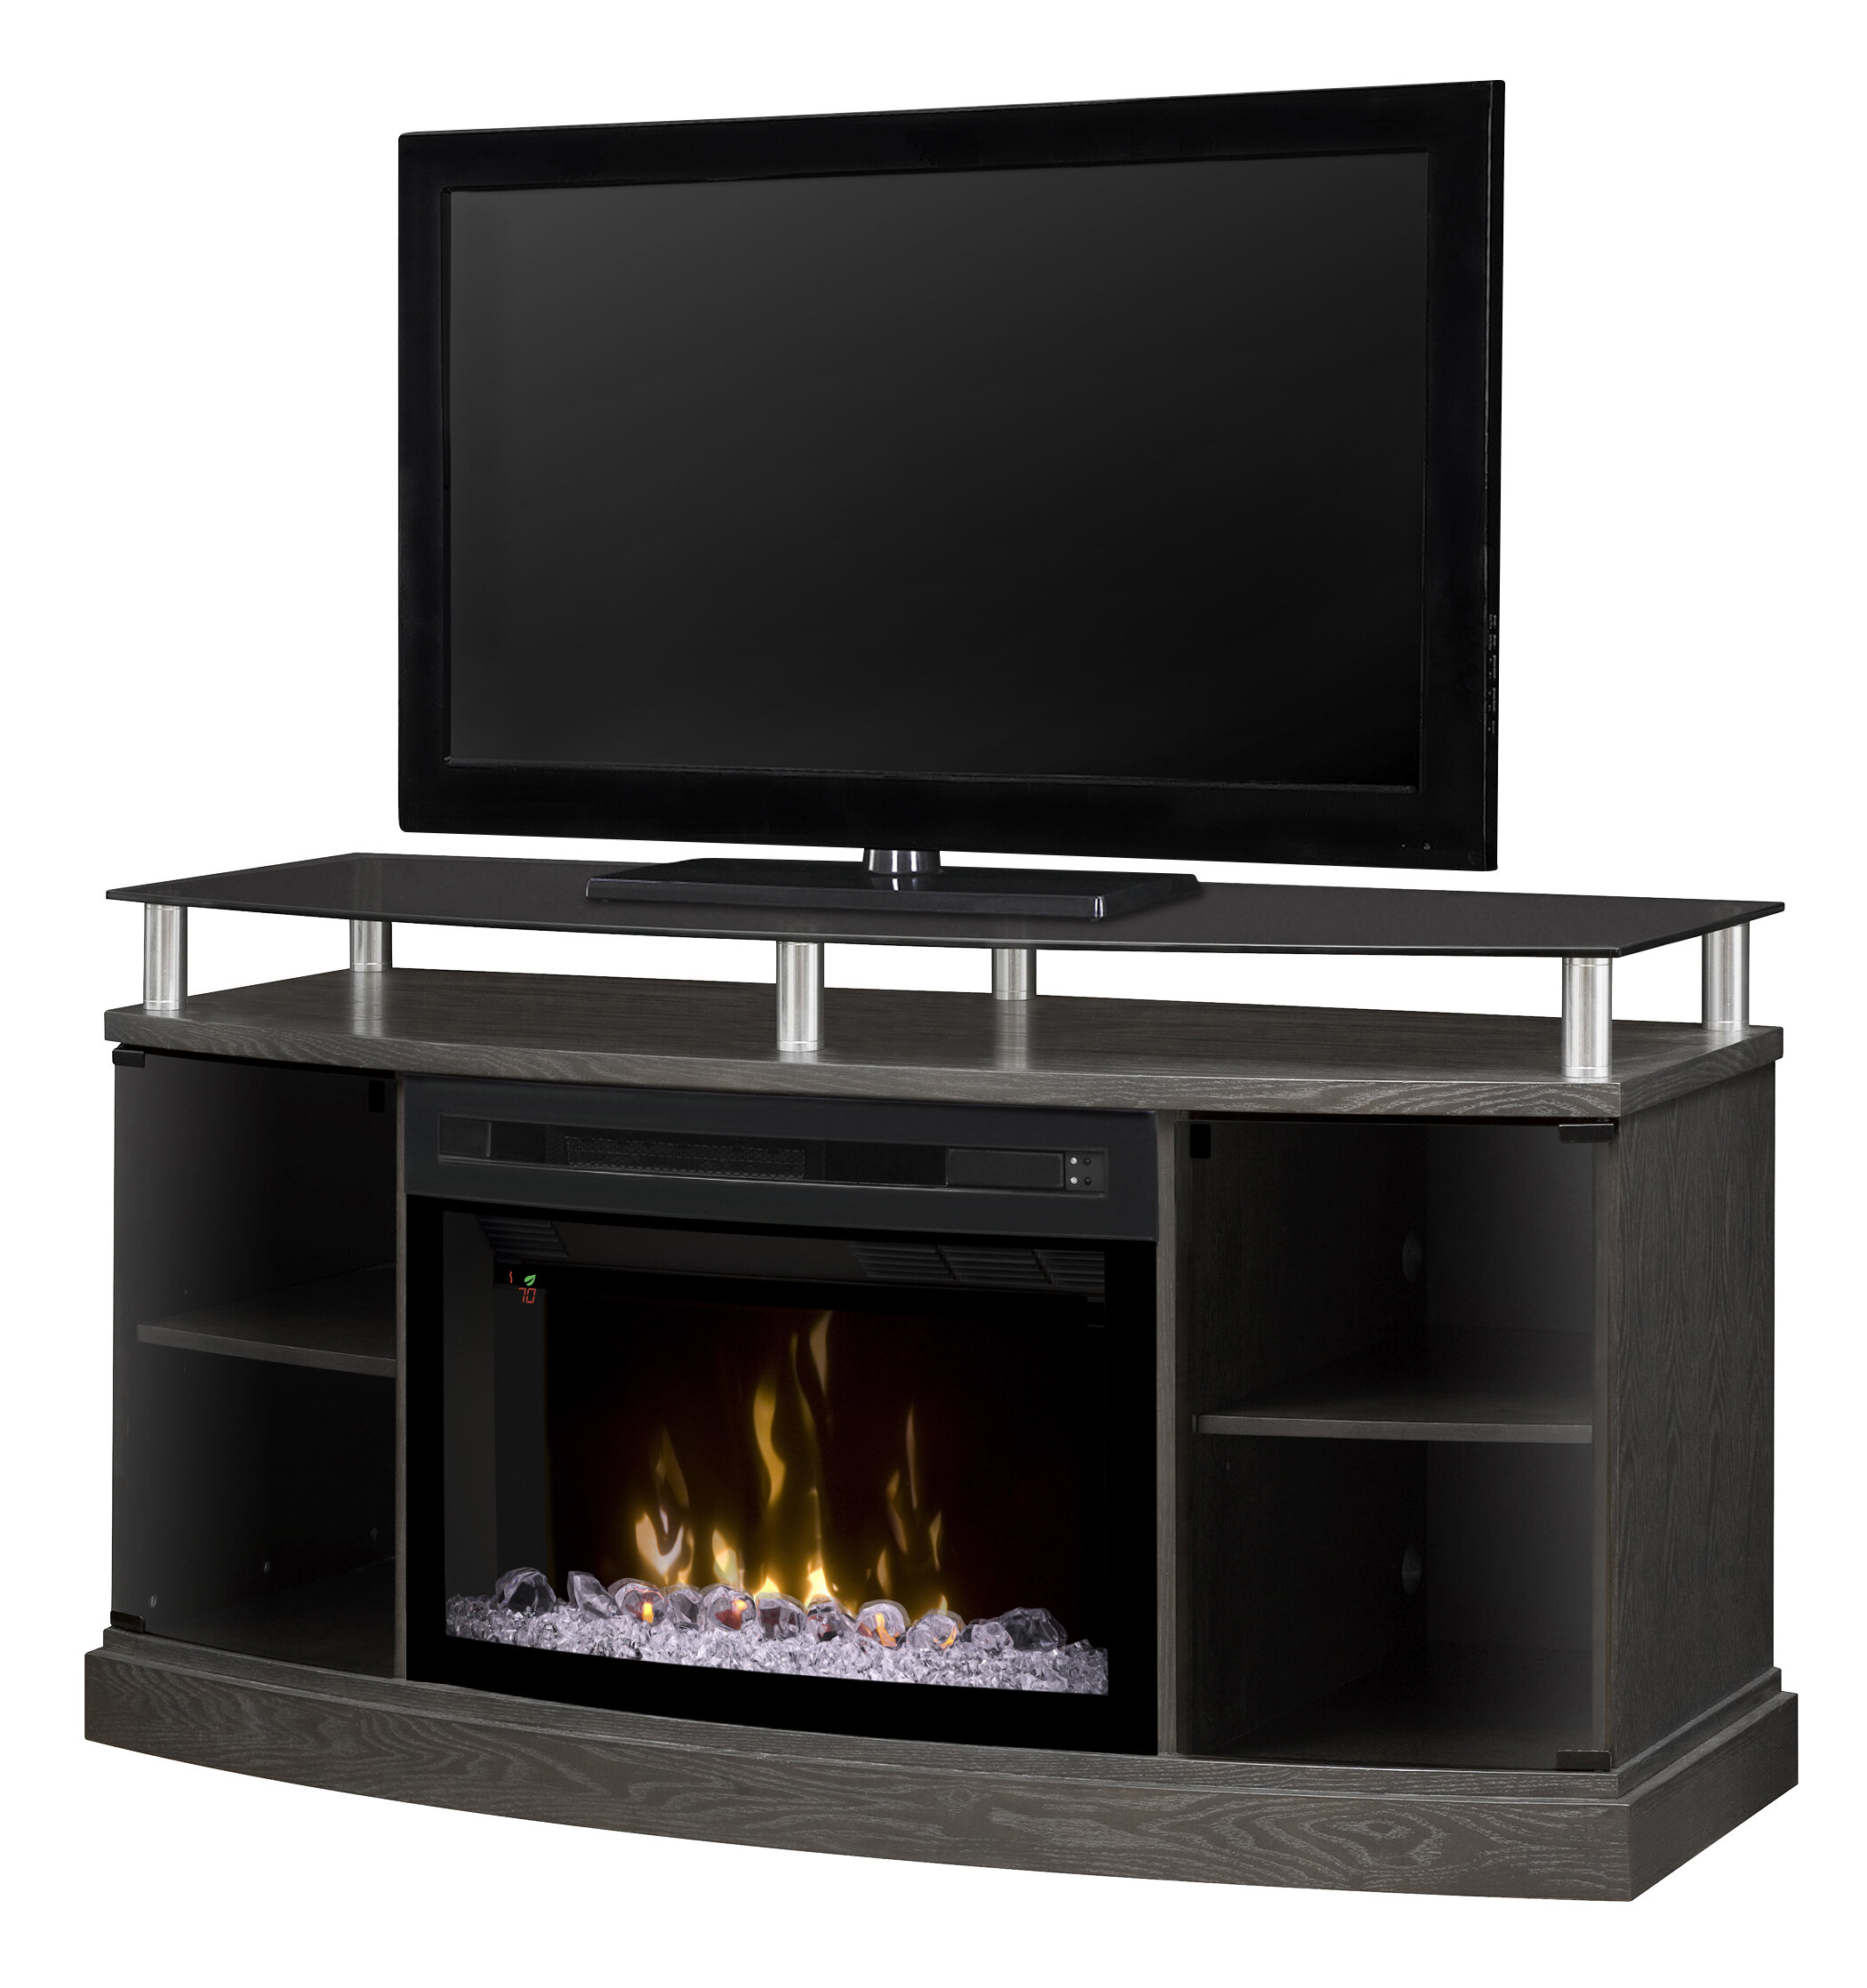 Shop Wayfair for the best gas fireplace with tv stand. Enjoy Free Shipping on most stuff